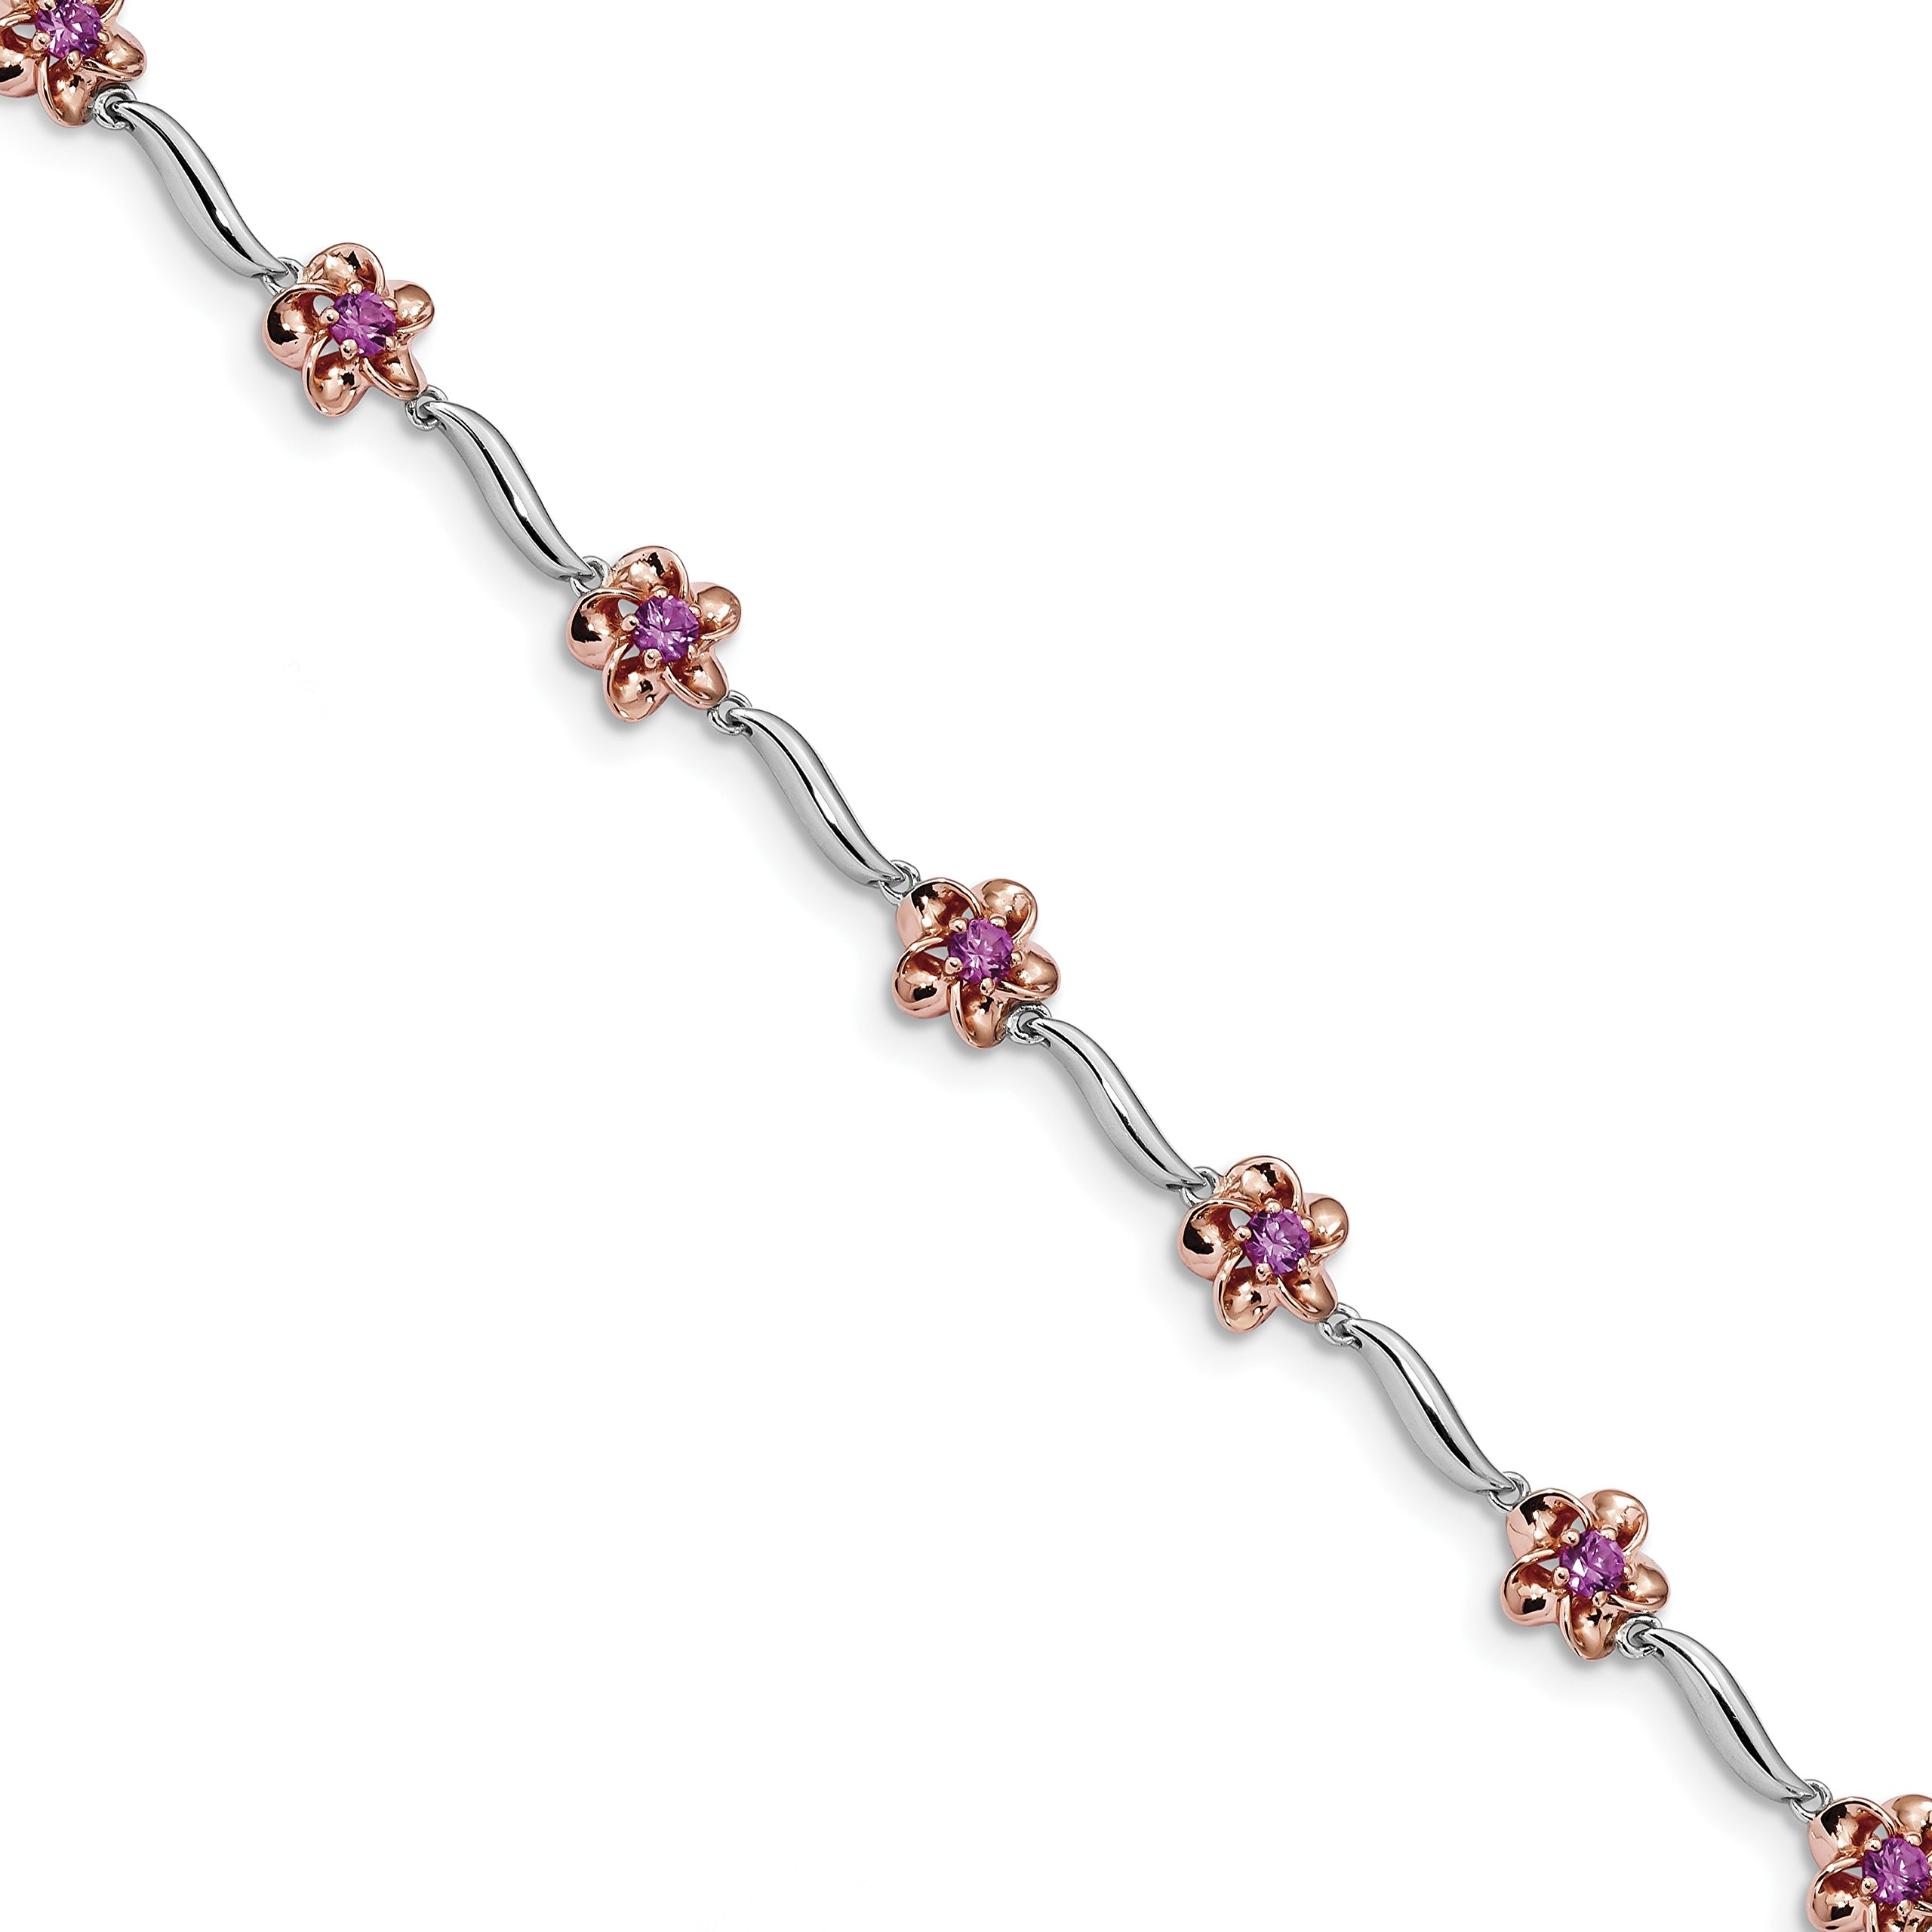 ICE CARATS 925 Sterling Silver Rose Tone Created Pink Sapphire Bracelet 7.5 Inch Gemstone Fine Jewelry Gift Set For Women Heart by ICE CARATS